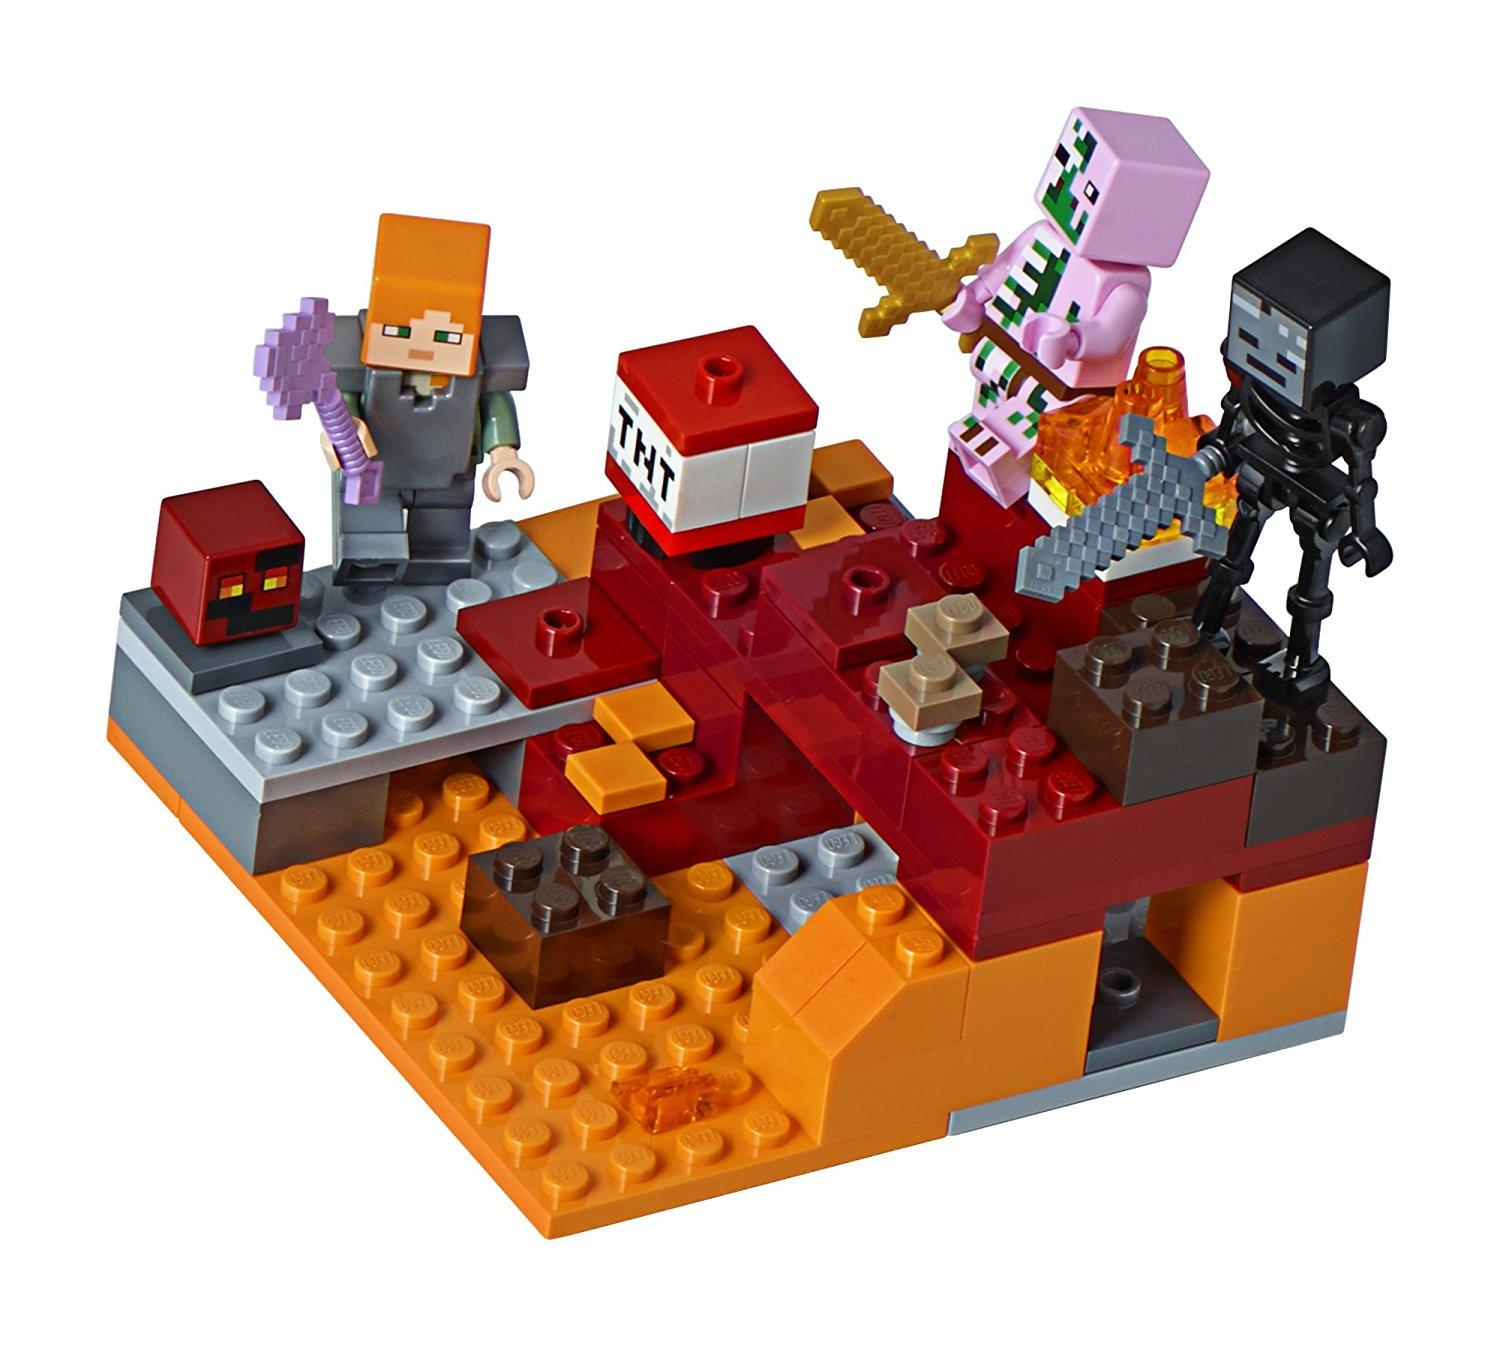 Fitur Lego Bricks Lepin Minecraft 18034 The Nether Fight Dan Harga 21132 Jungle Temple Detail Gambar Terbaru